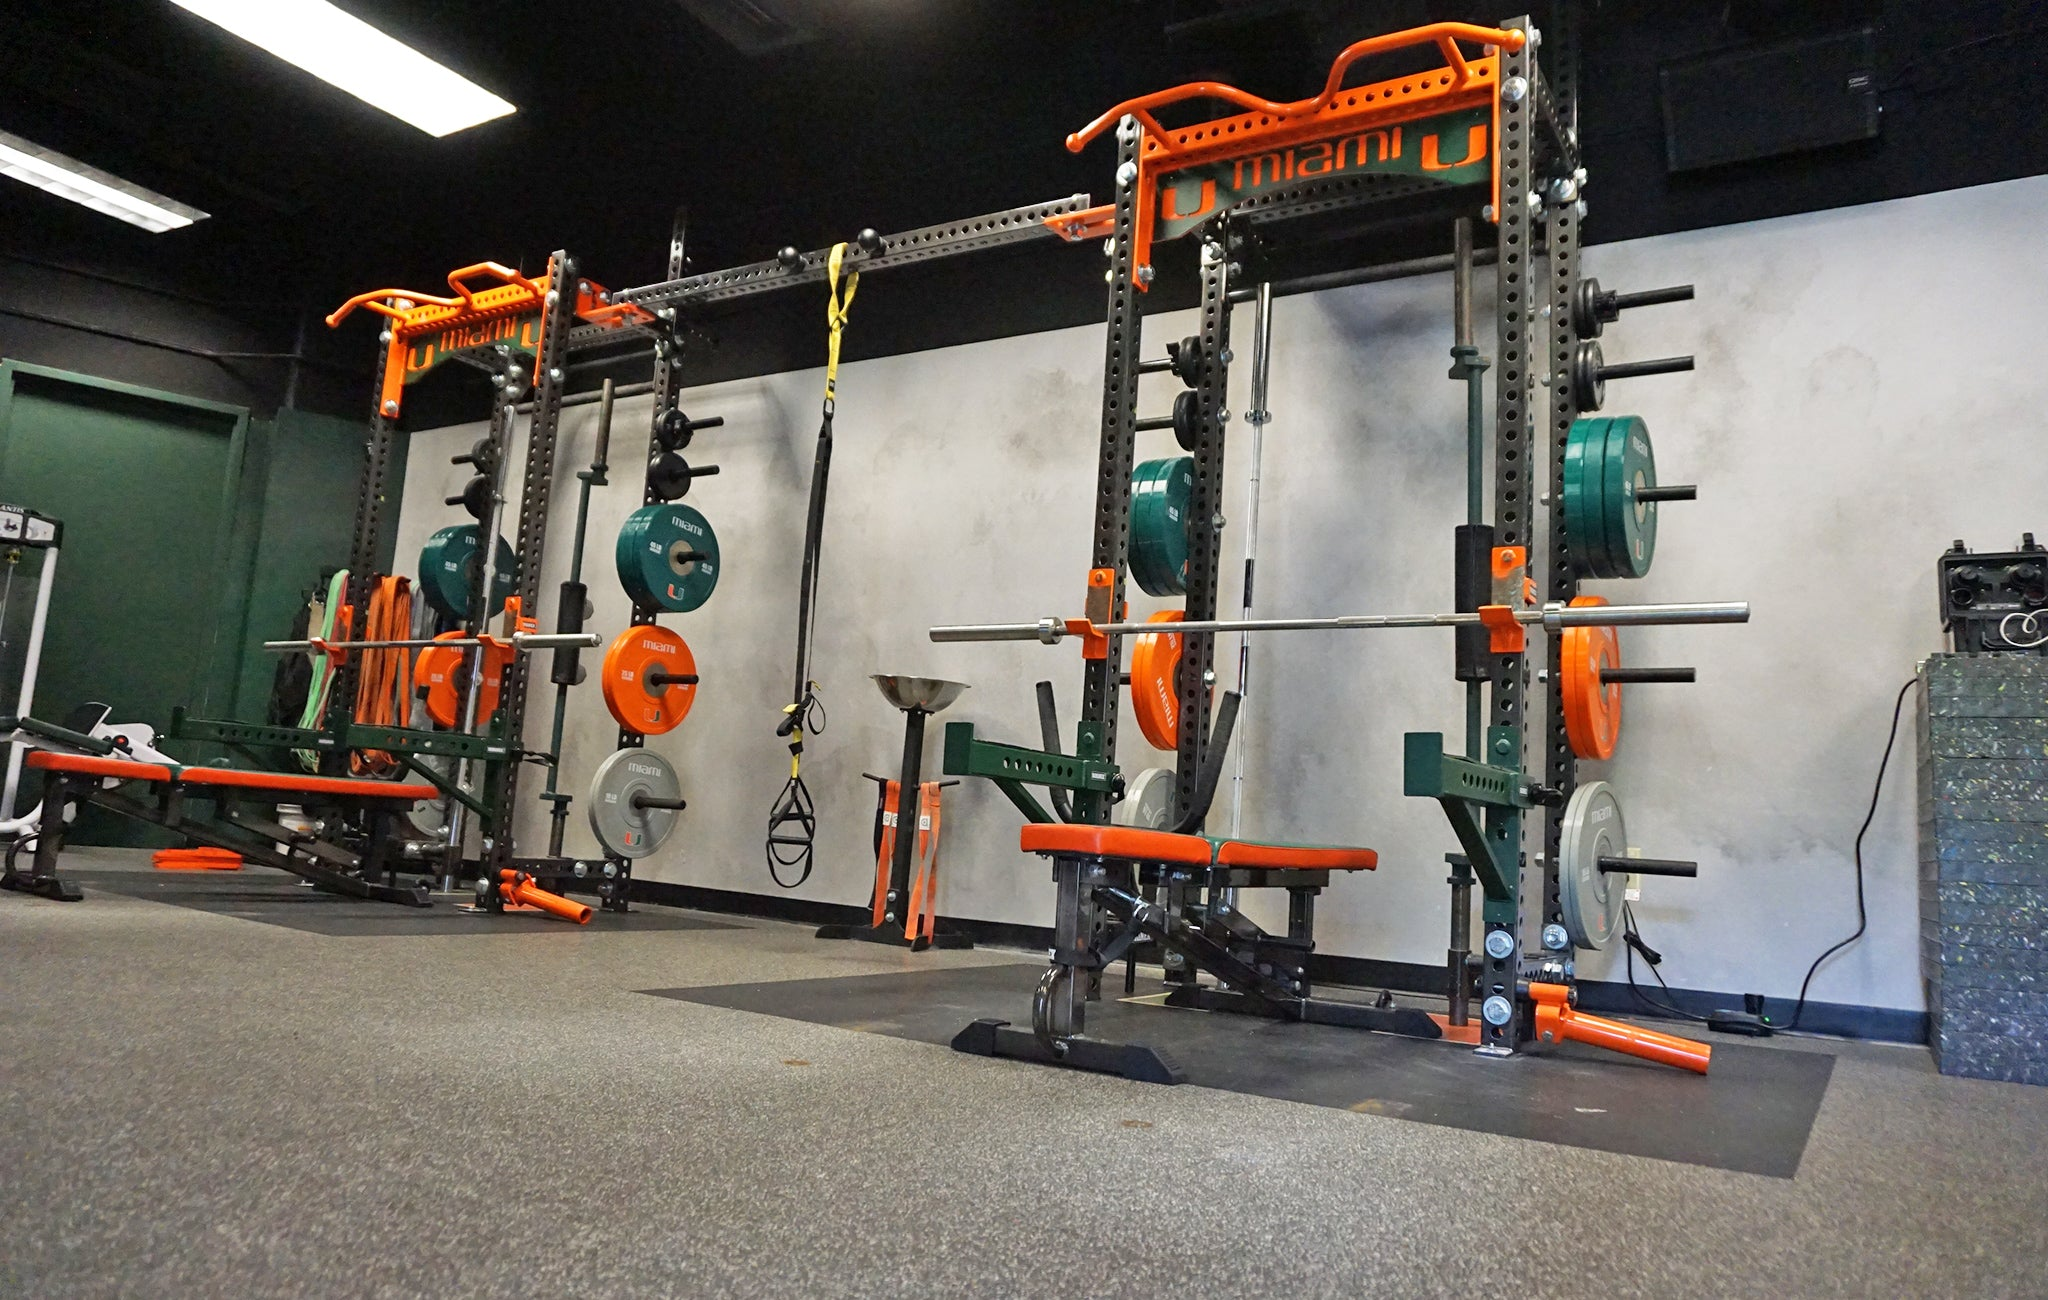 University of Miami basketball strength training